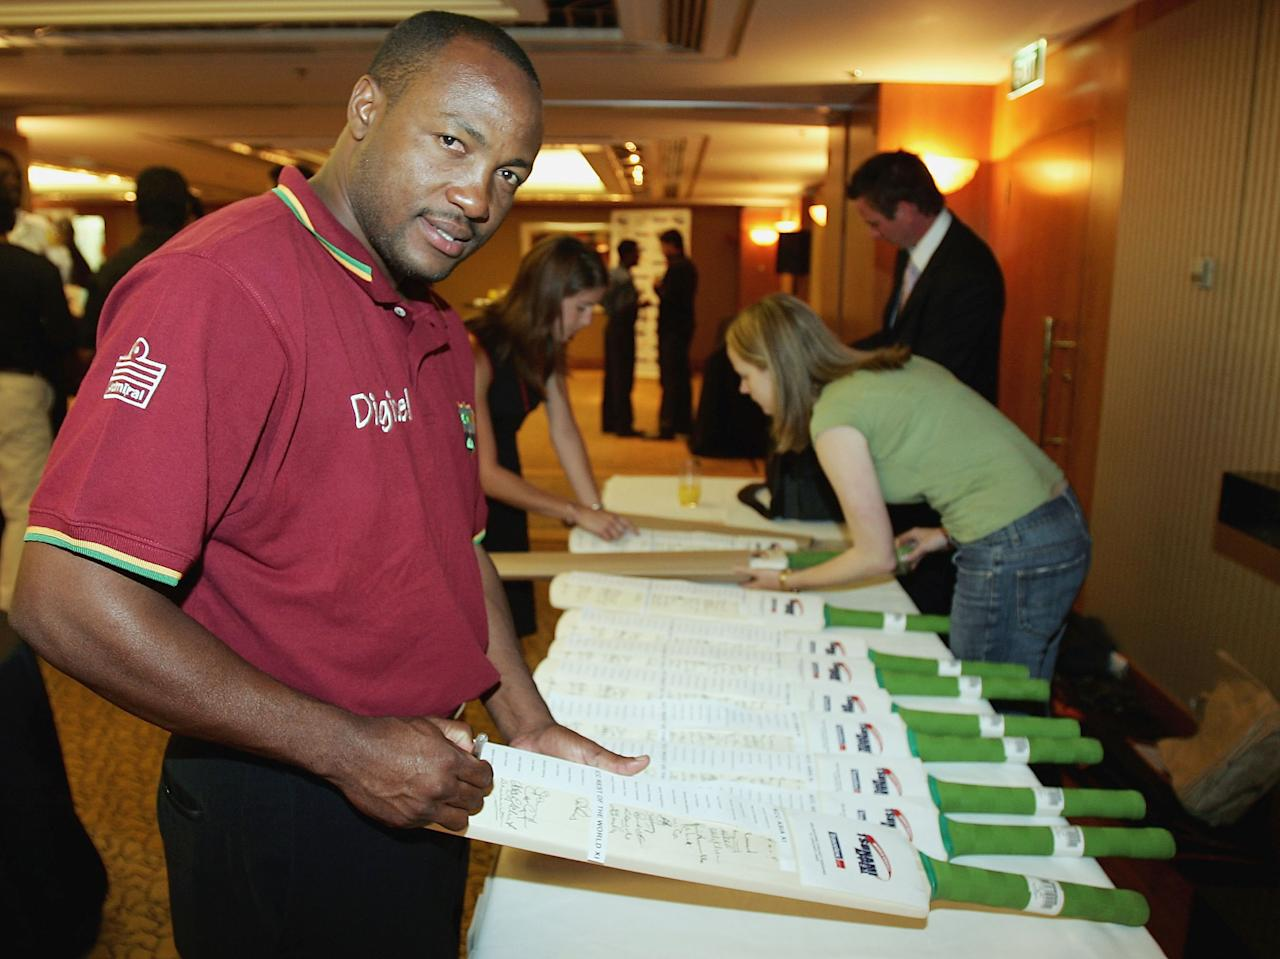 MELBOURNE, AUSTRALIA - JANUARY 9:  Brian Lara signs his autograph during a reception for tomorrows Tsunami Appeal Cricket match at the Hyatt On Collins on January 9, 2005 in Melbourne, Australia. (Photo by Mark Dadswell/Getty Images)